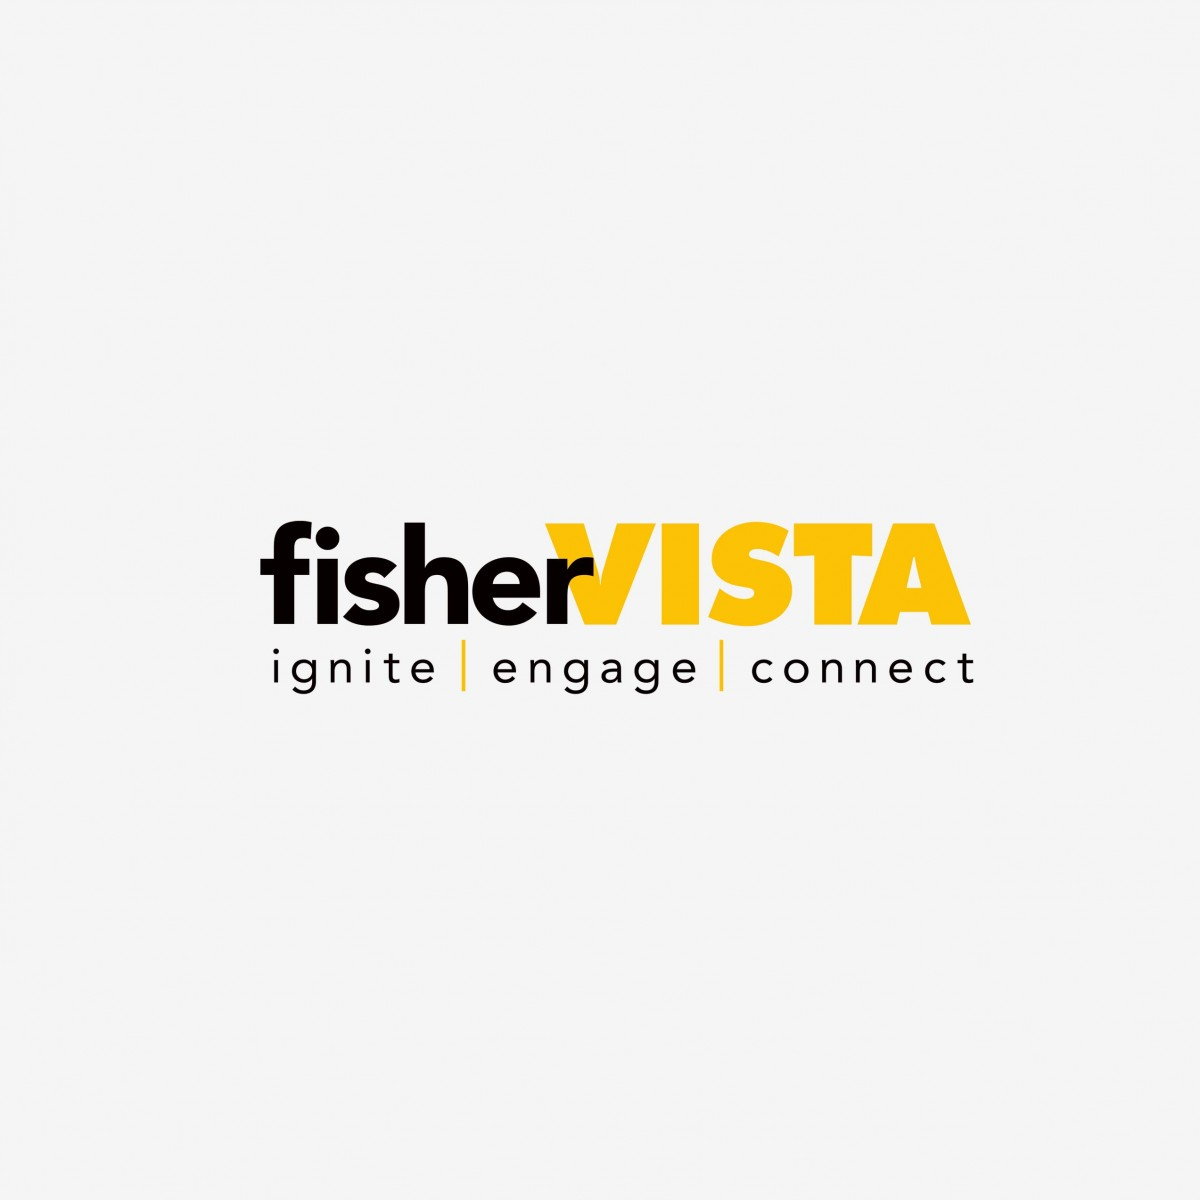 fisherVista corporate identity